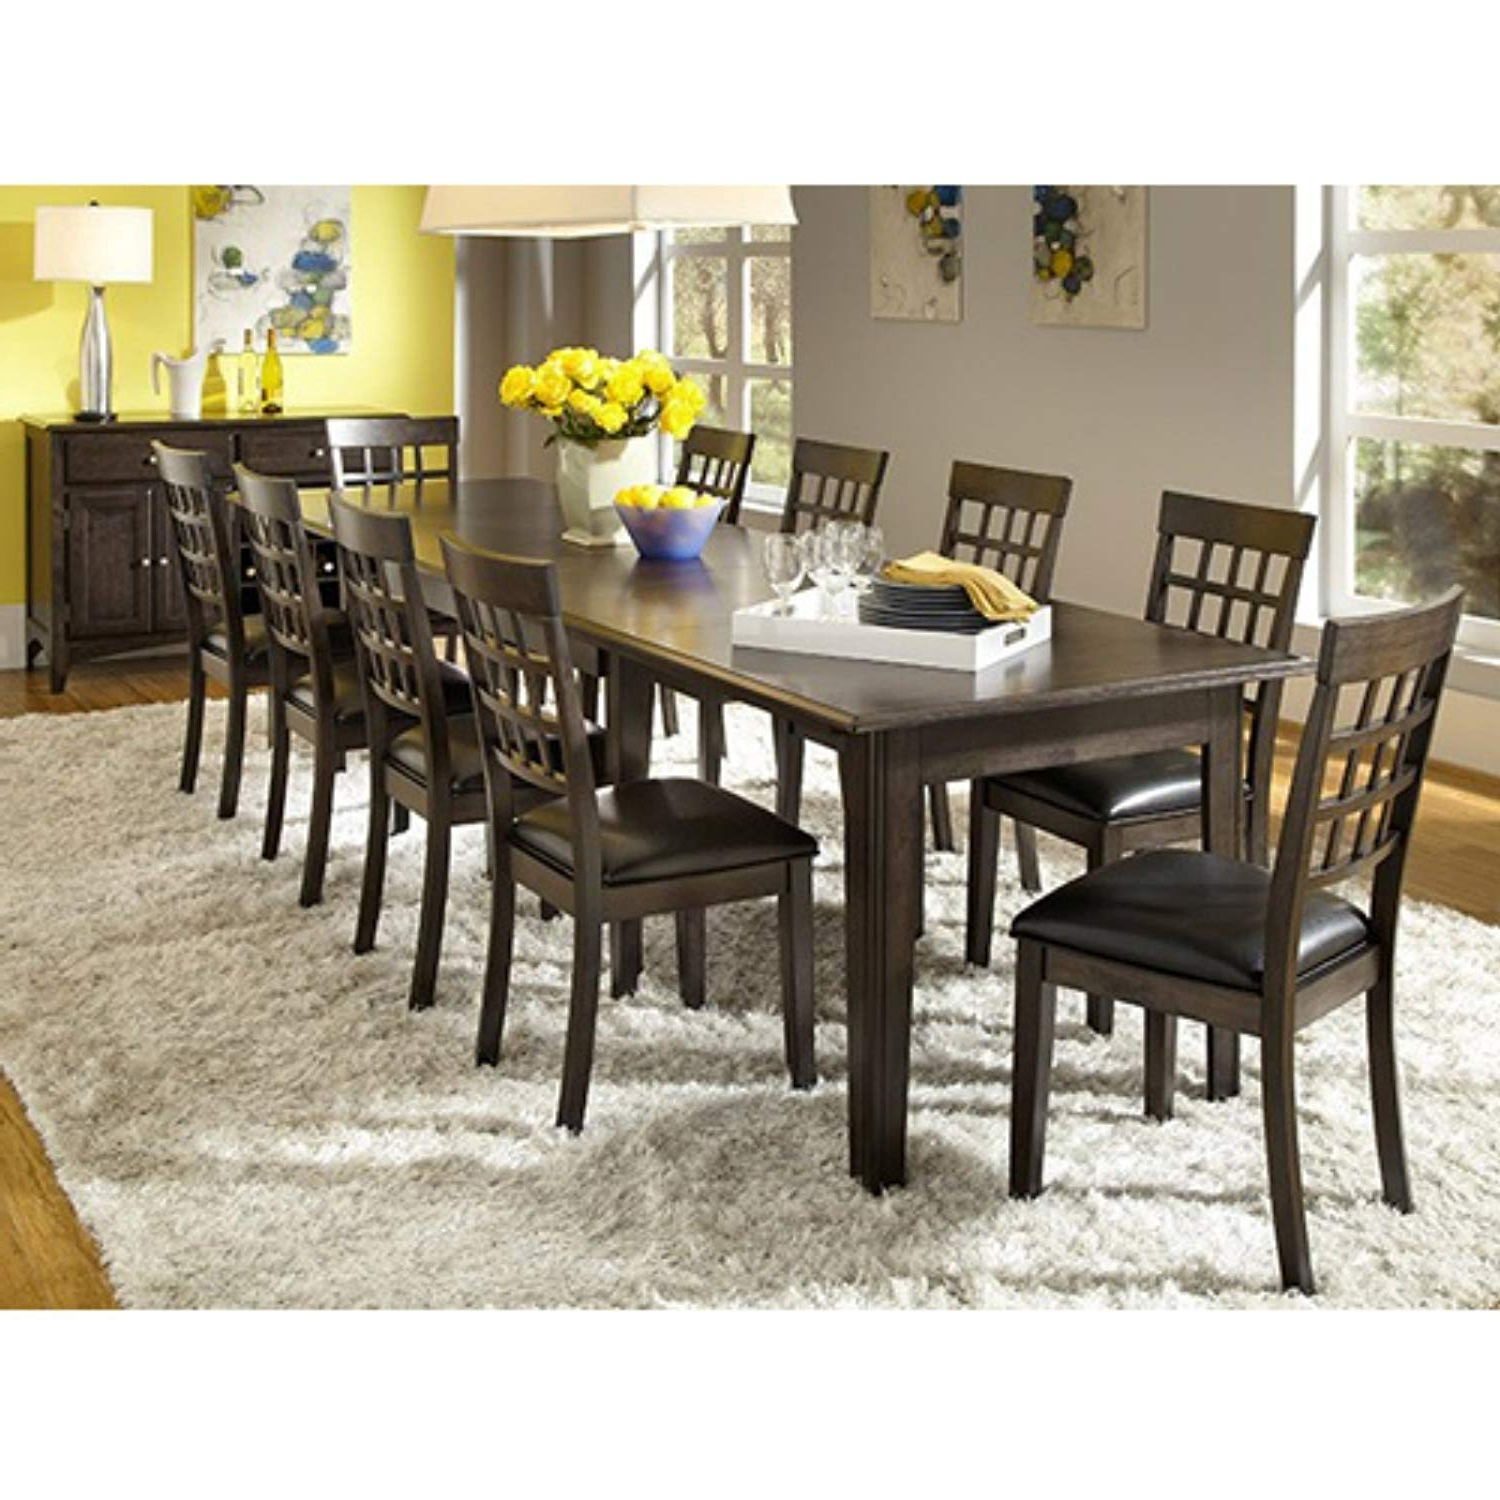 "Amazon: A America Bristol Point 132"" Rectangular Dining Table Pertaining To Most Popular Dining Tables Grey Chairs (Gallery 25 of 25)"